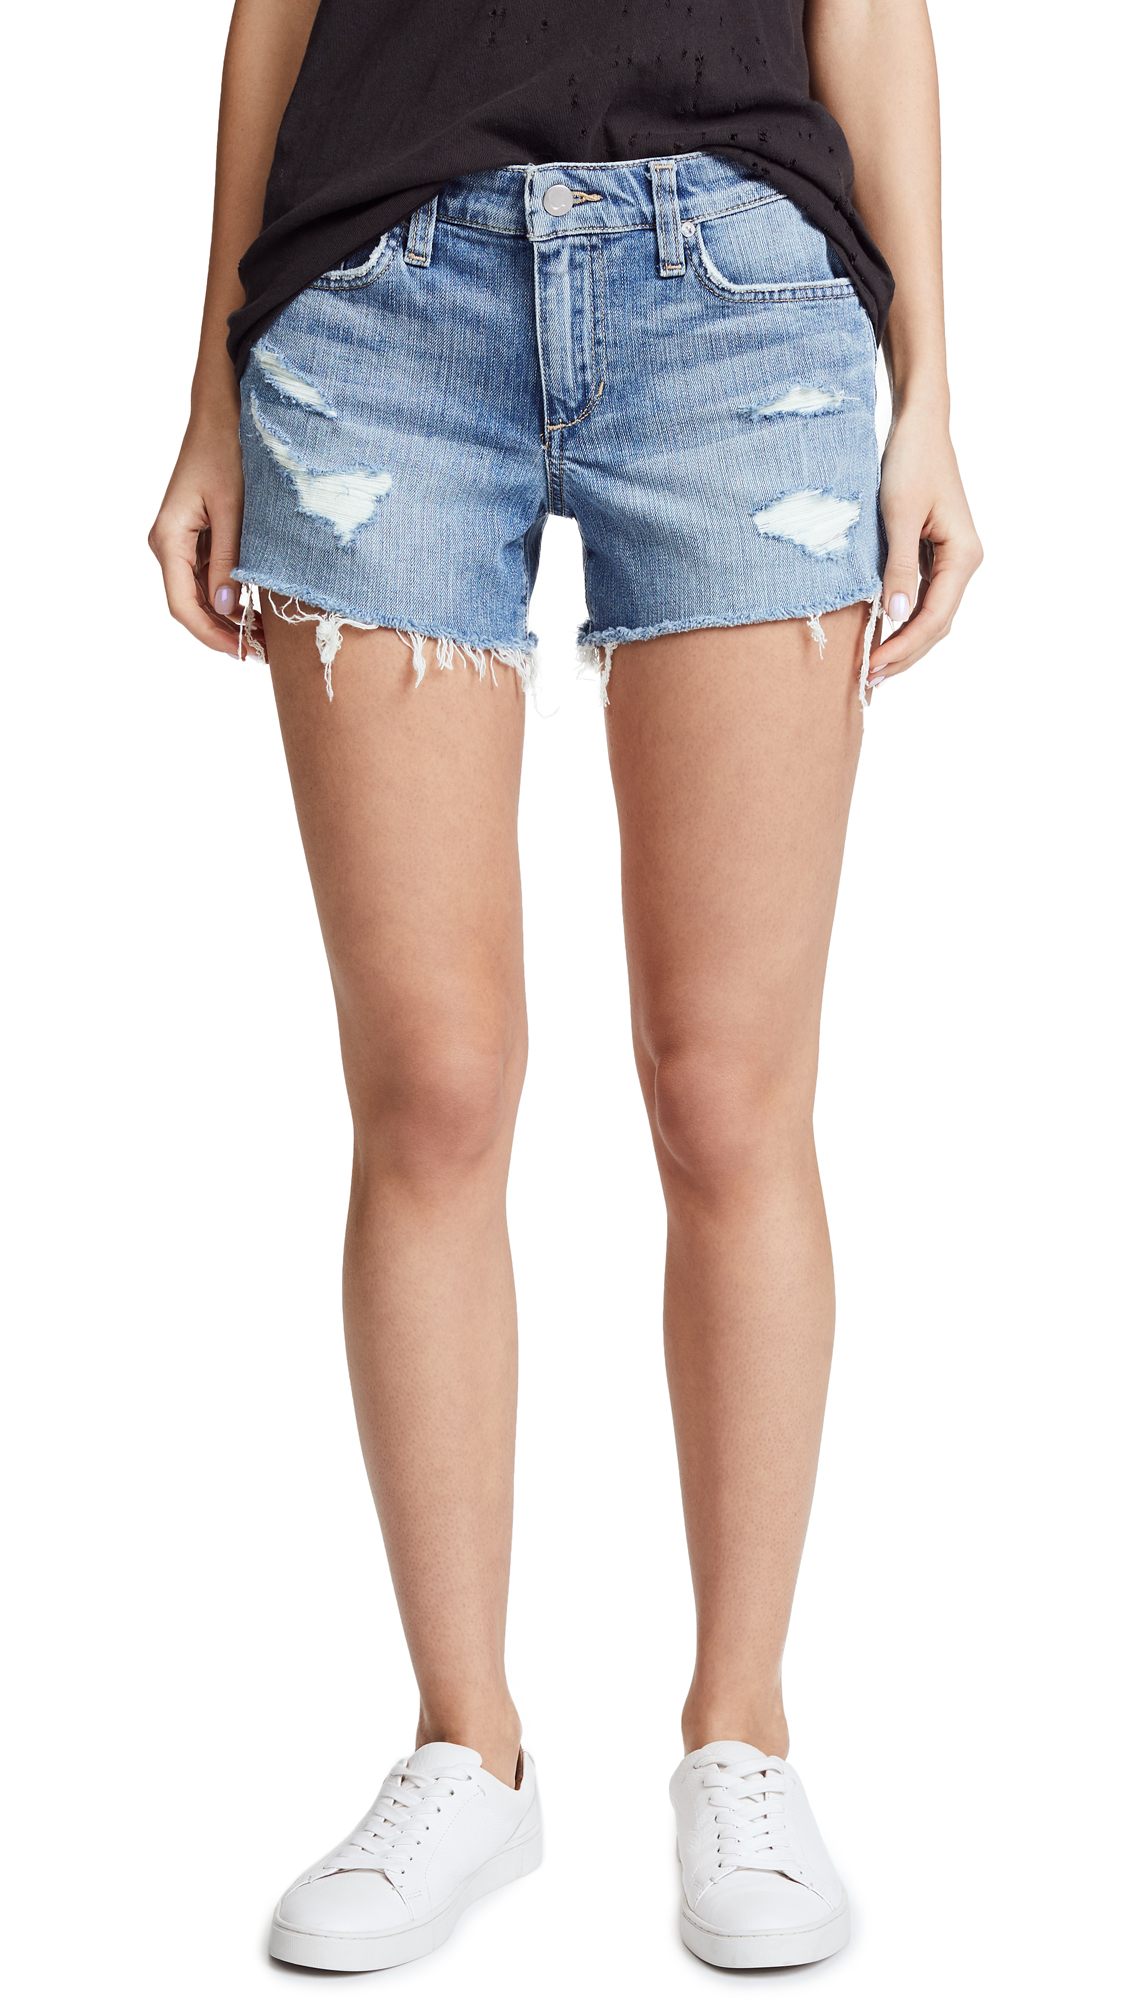 "Joe's Jeans The Ozzie 4 Shorts"" In Bexley"